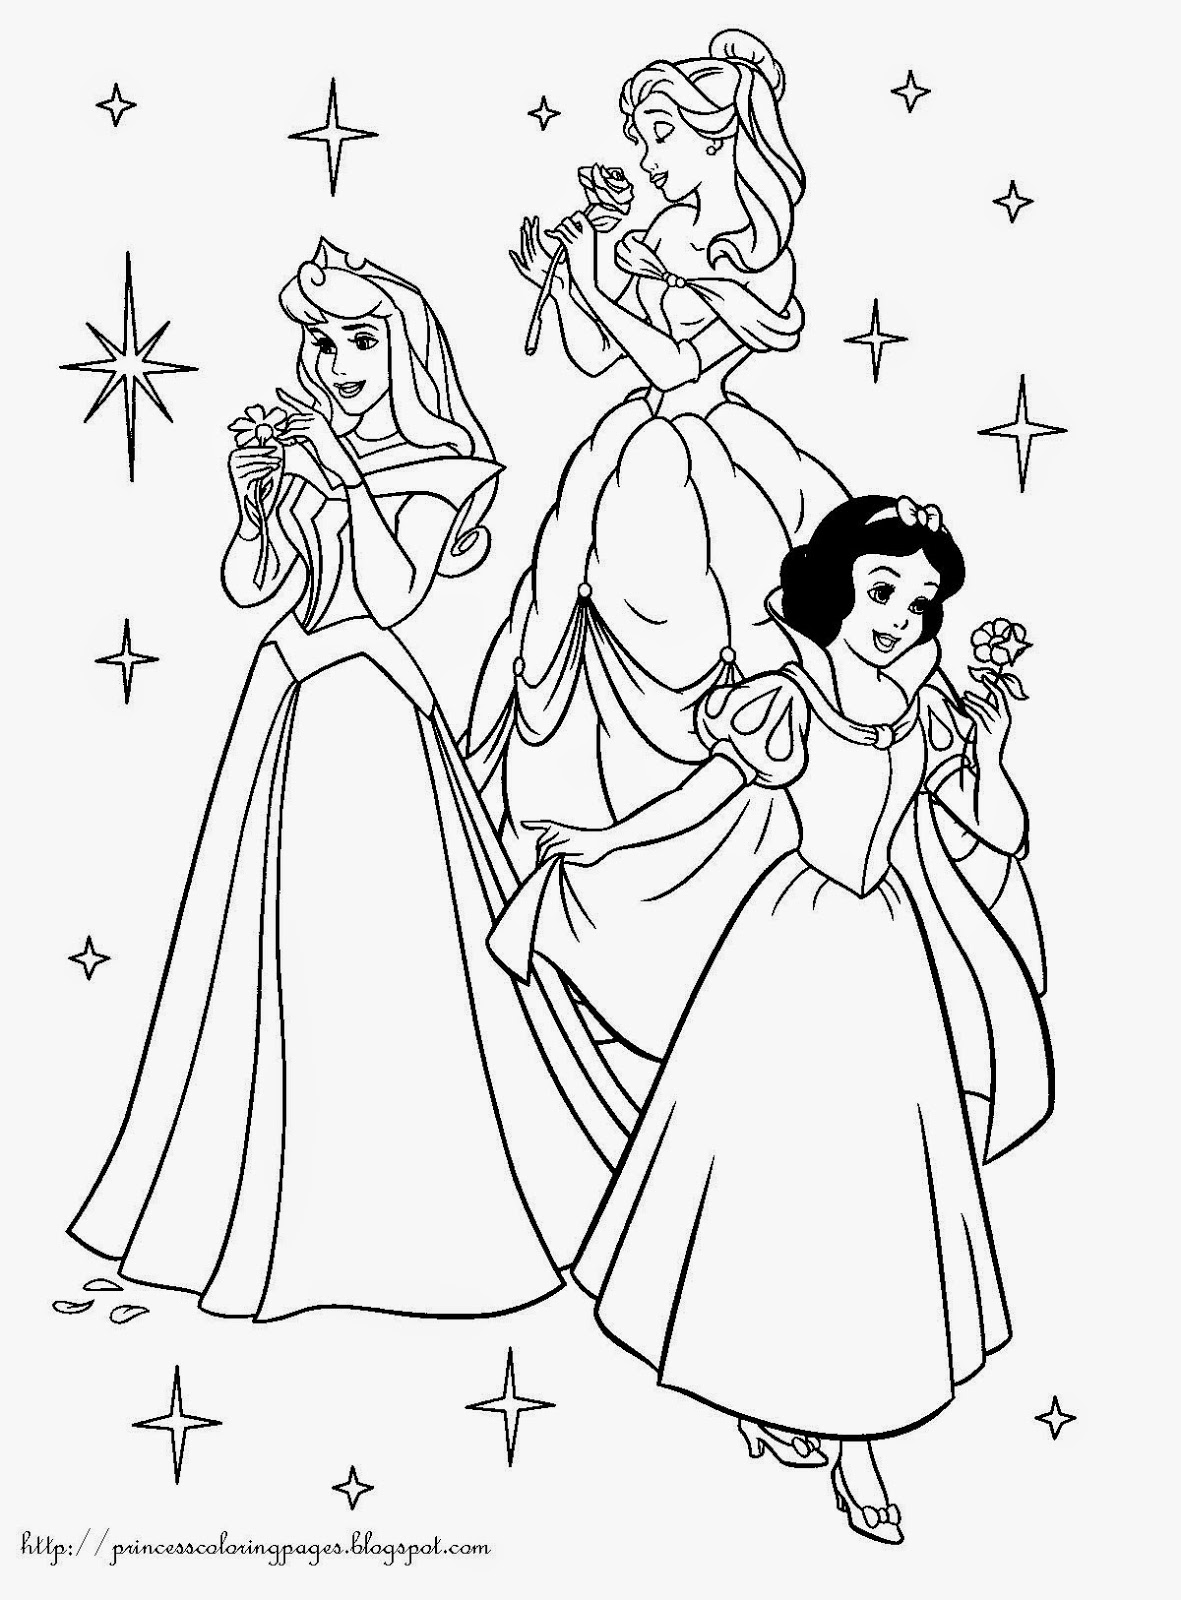 easy princess coloring pages - photo#14